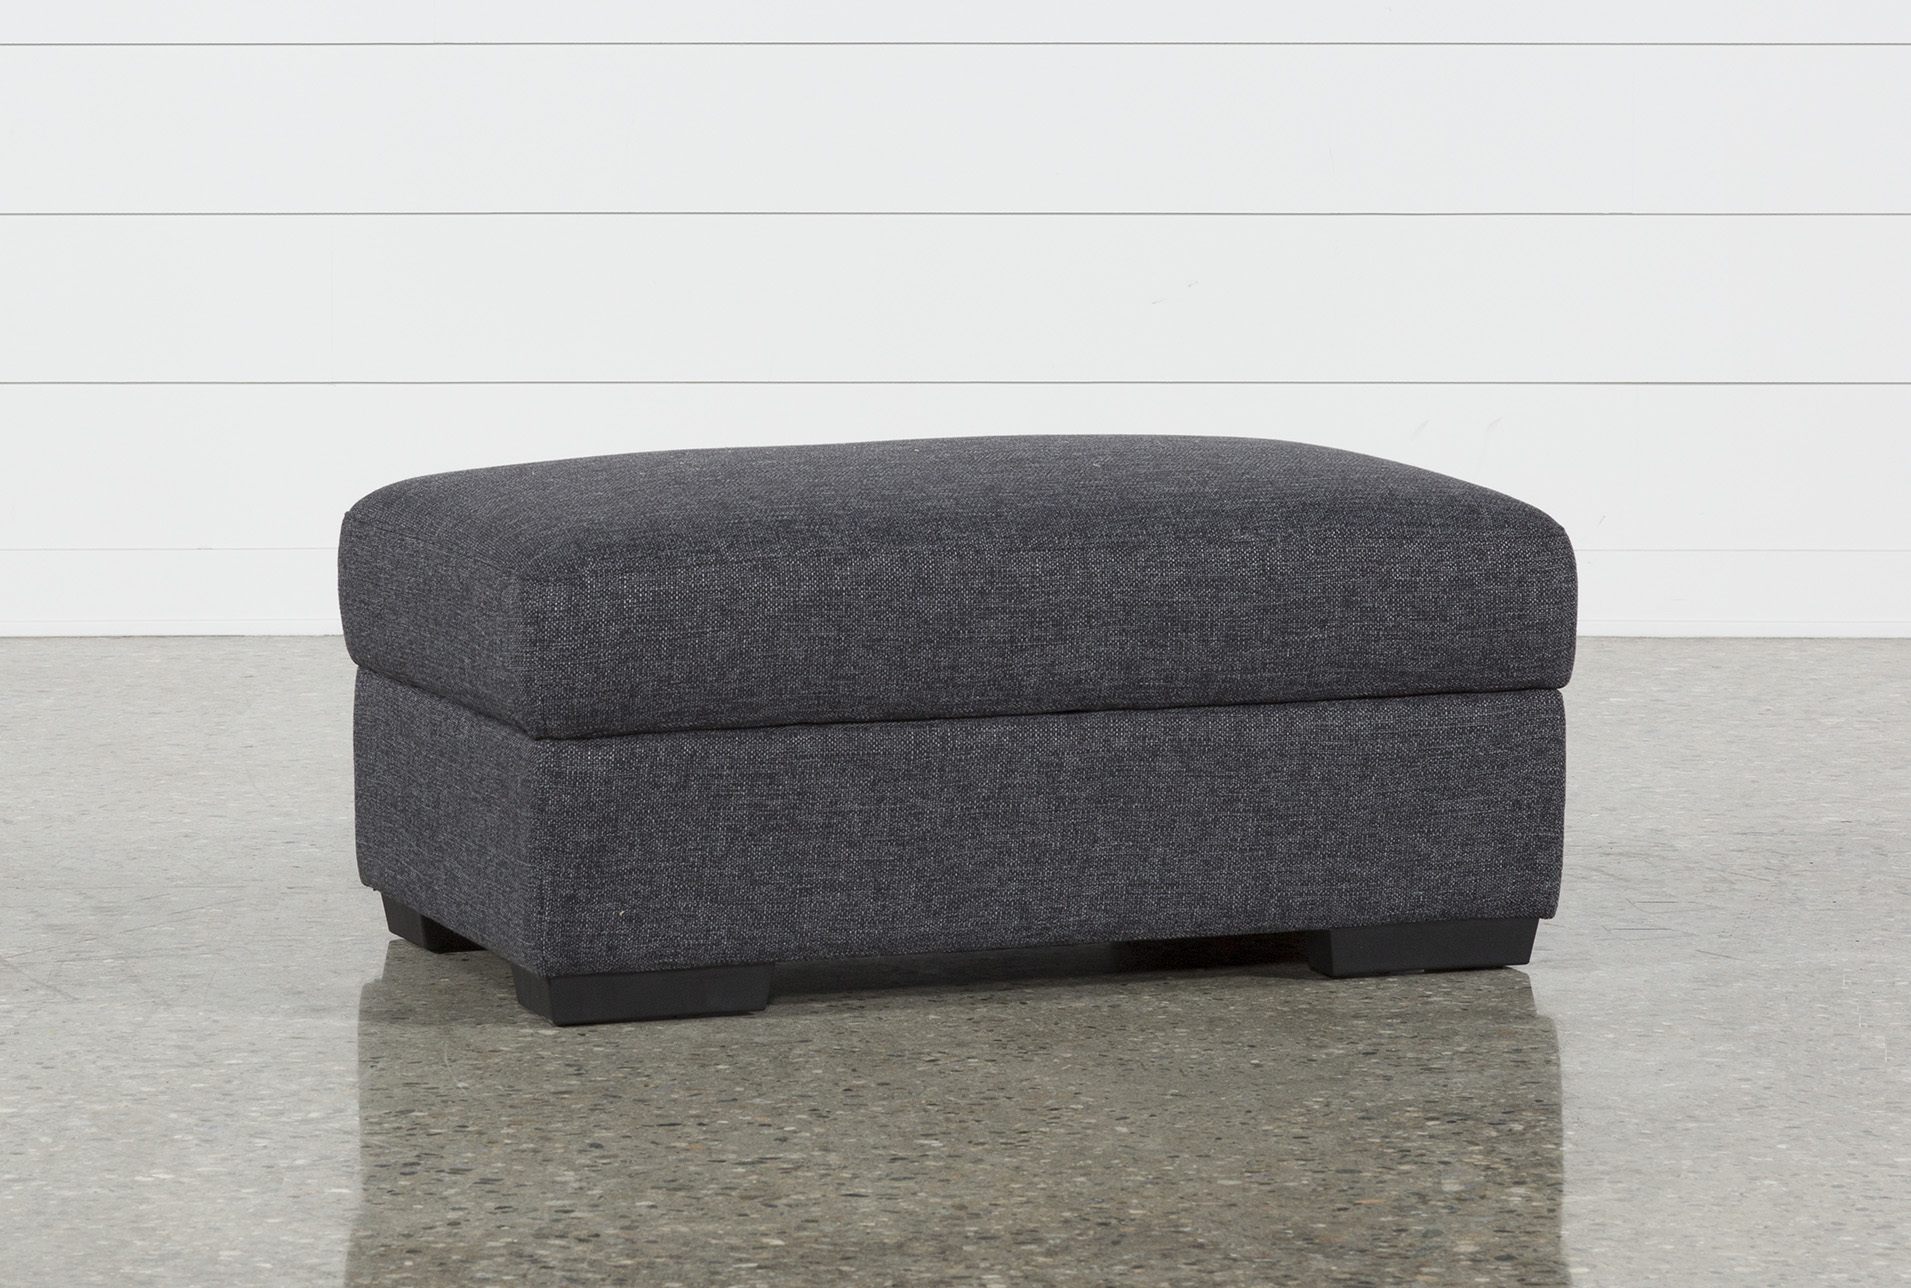 Superieur Lucy Dark Grey Cocktail Storage Ottoman (Qty: 1) Has Been Successfully  Added To Your Cart.